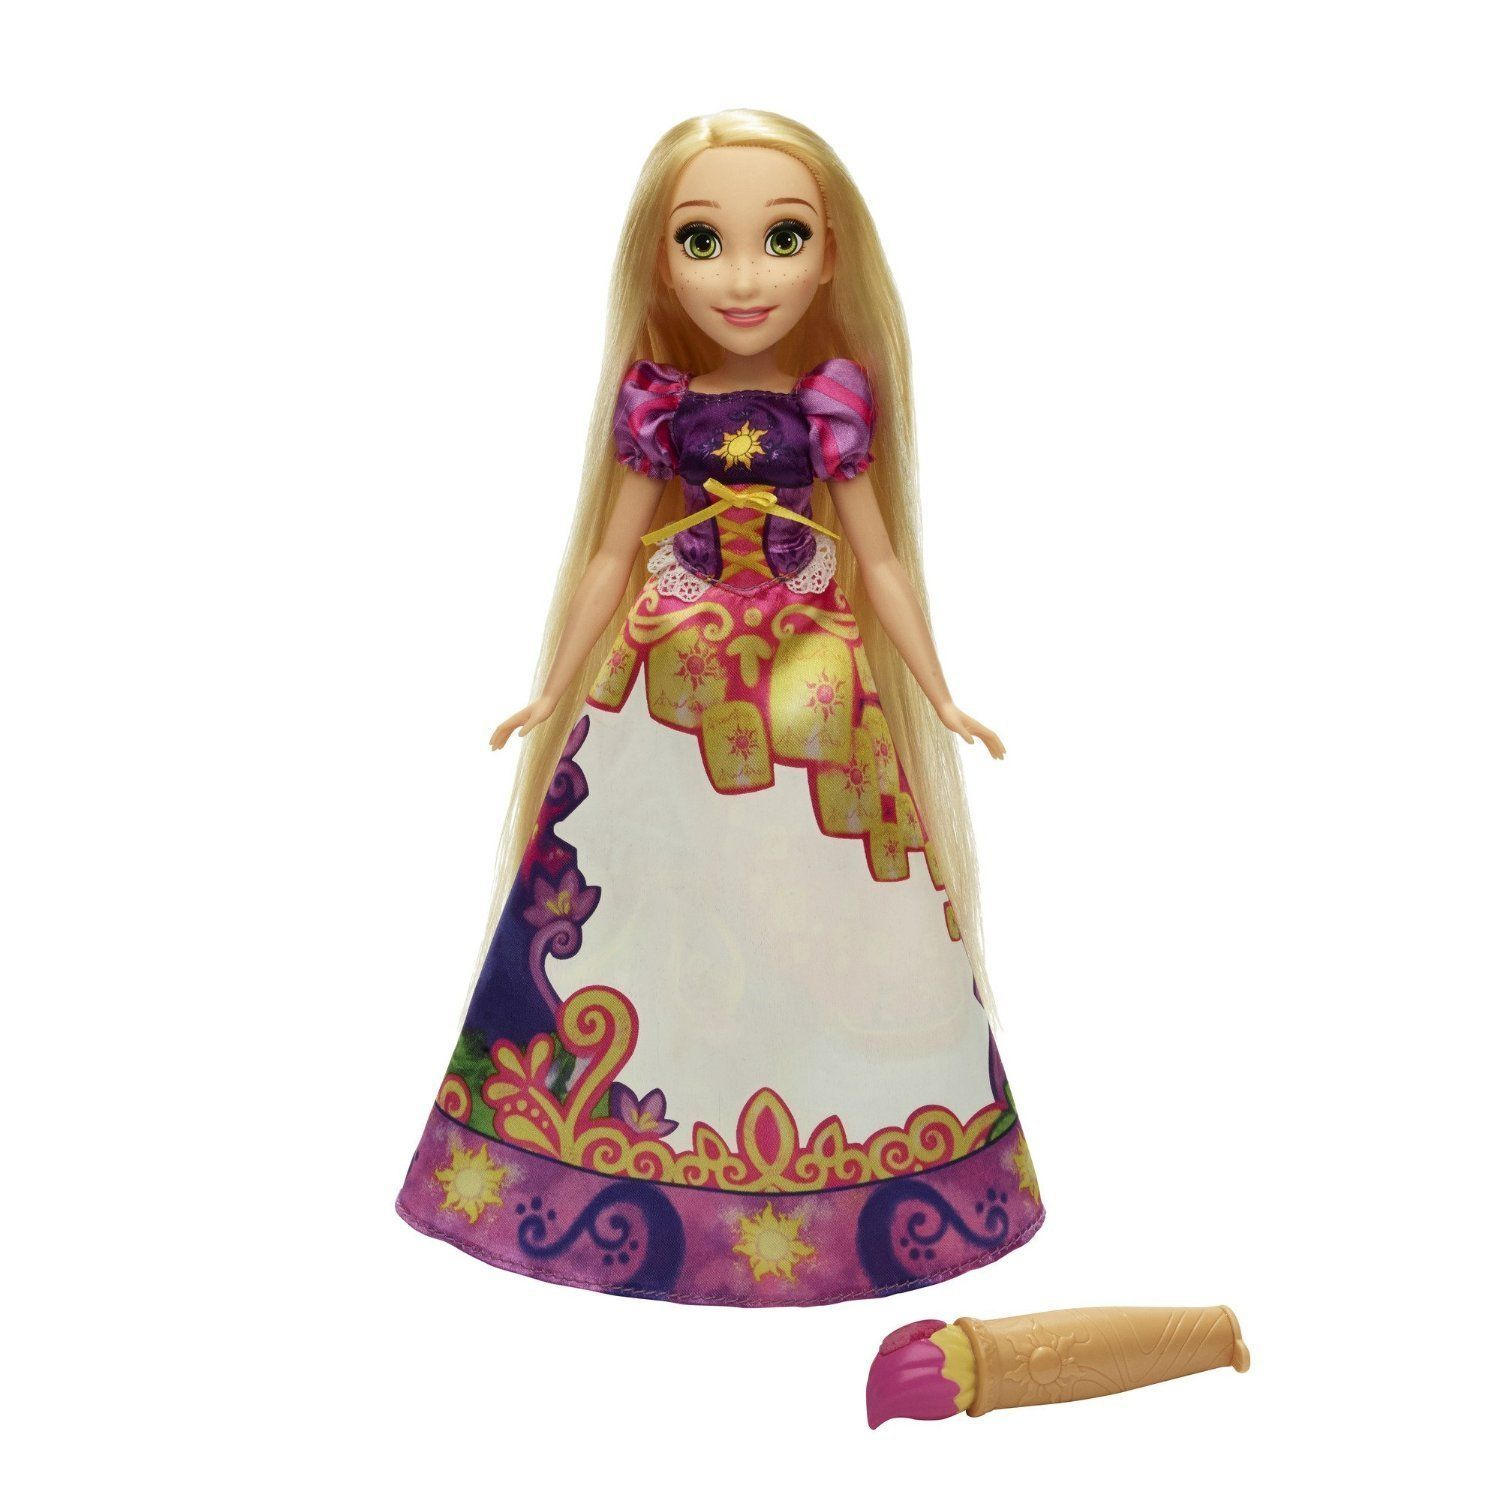 Disney Princess Rapunzel Story Skirt Doll in Pink Purple by Hasbro